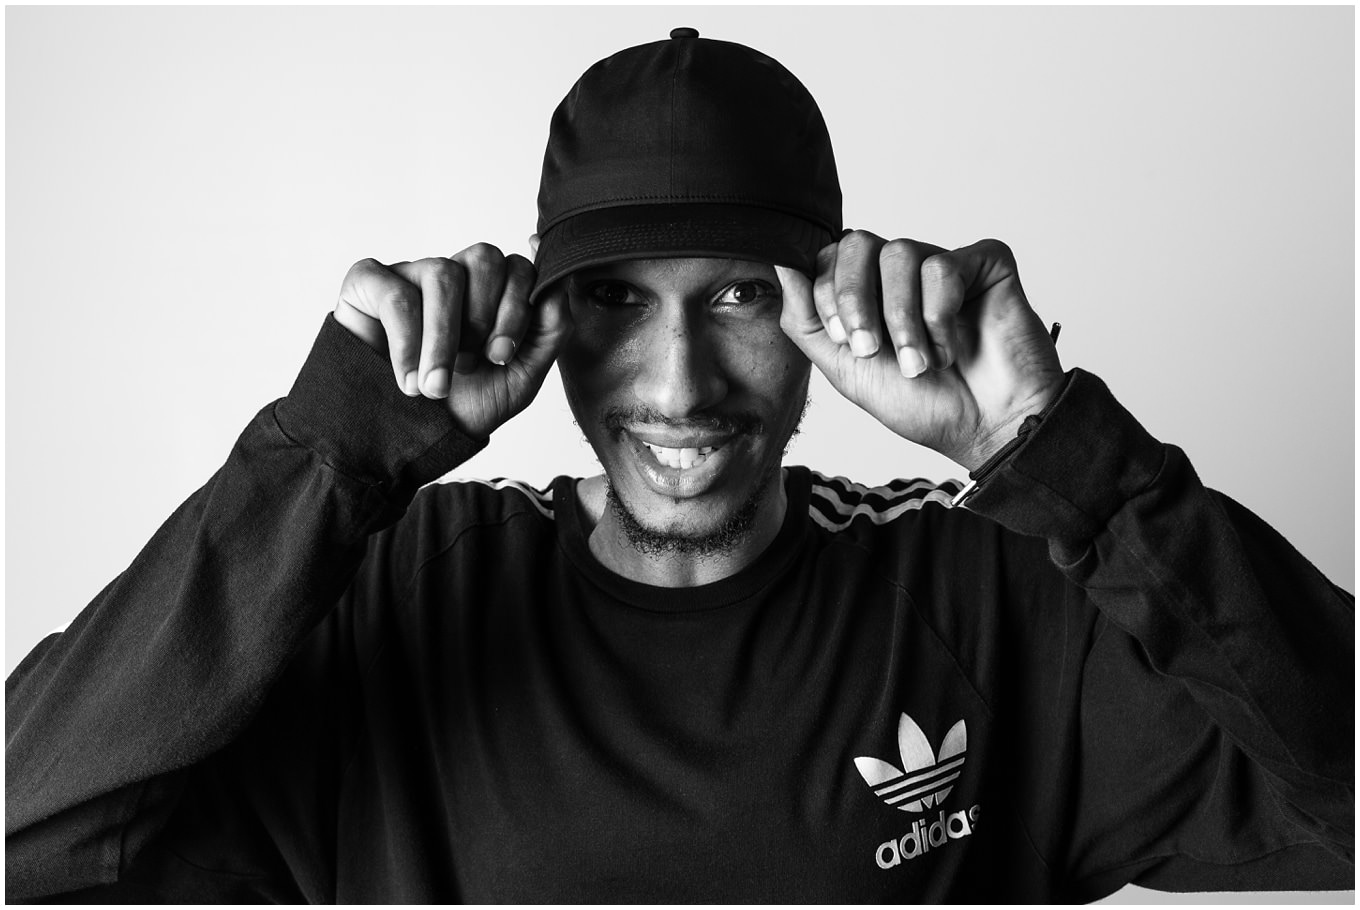 Adam Lowe Photography, skateboarding, skate, embassy, deangelo harris, street style, adidas,studio photography, commercial, editorial, lifestyle, columbus, ohio, portrait